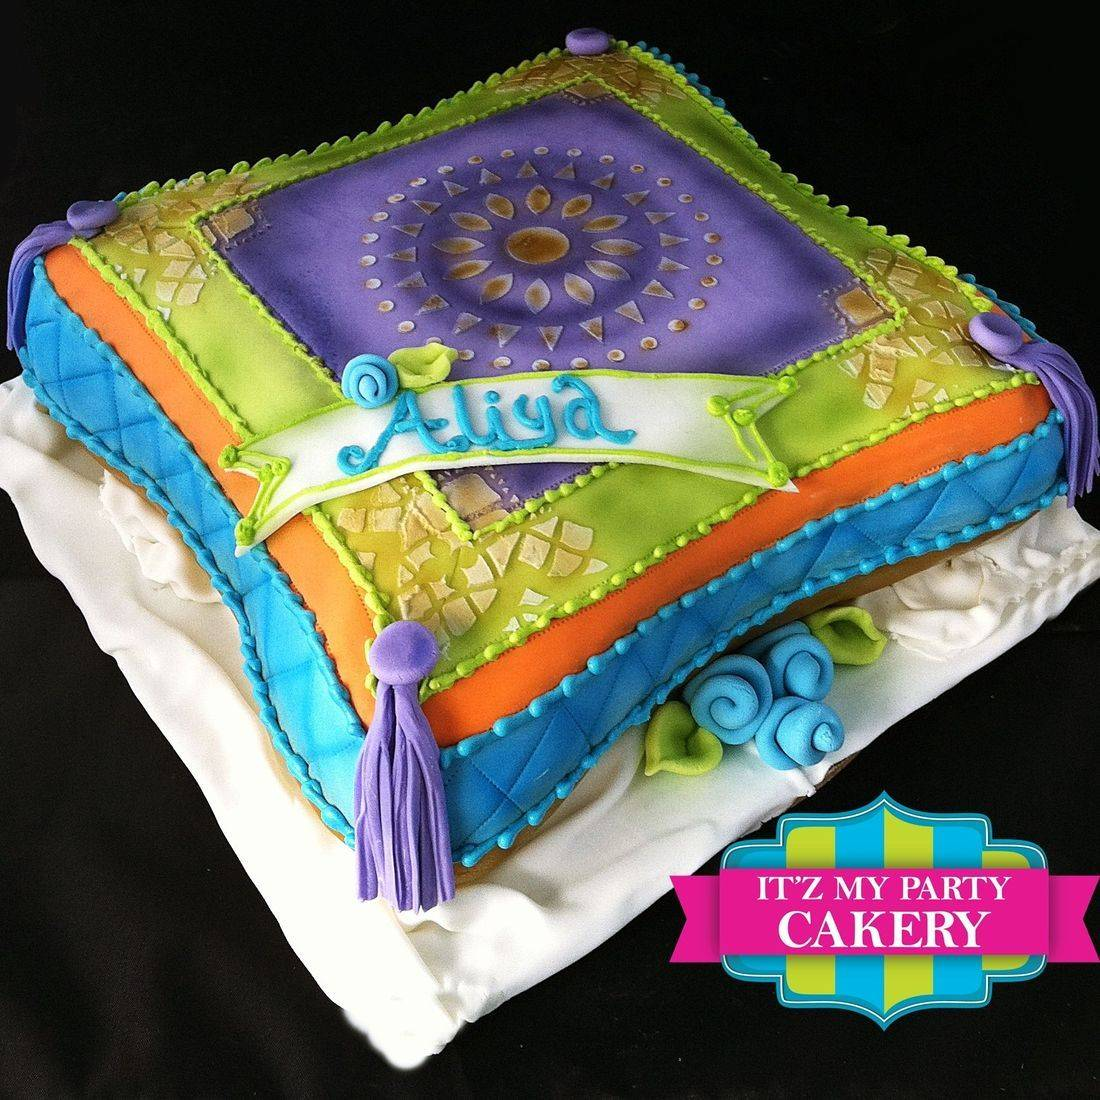 Moroccan Pillow Cake Carved Dimensional Cake Milwaukee